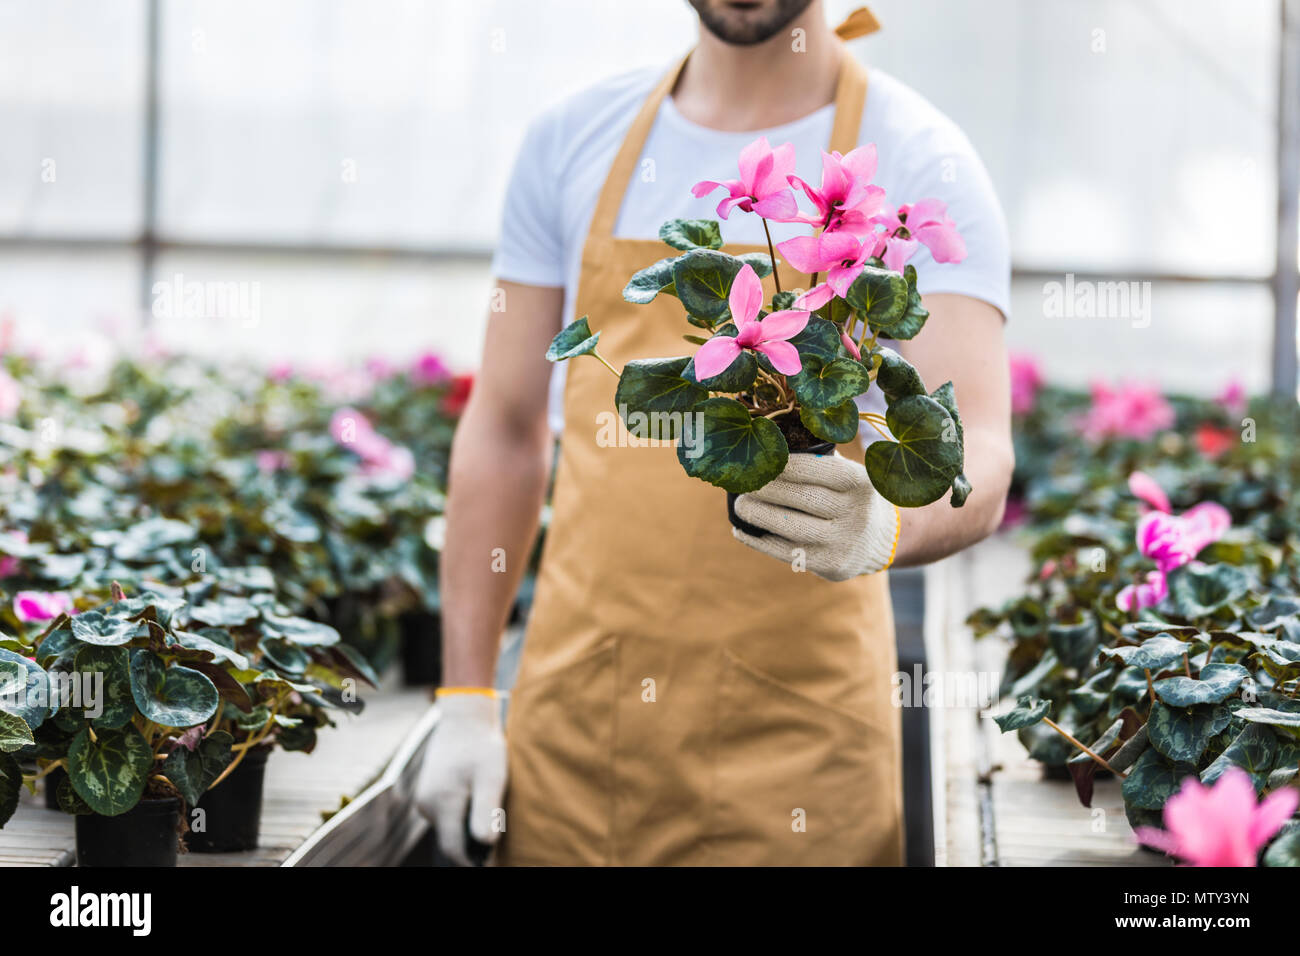 Close-up view of pot with Cyclamen flowers in male hands - Stock Image